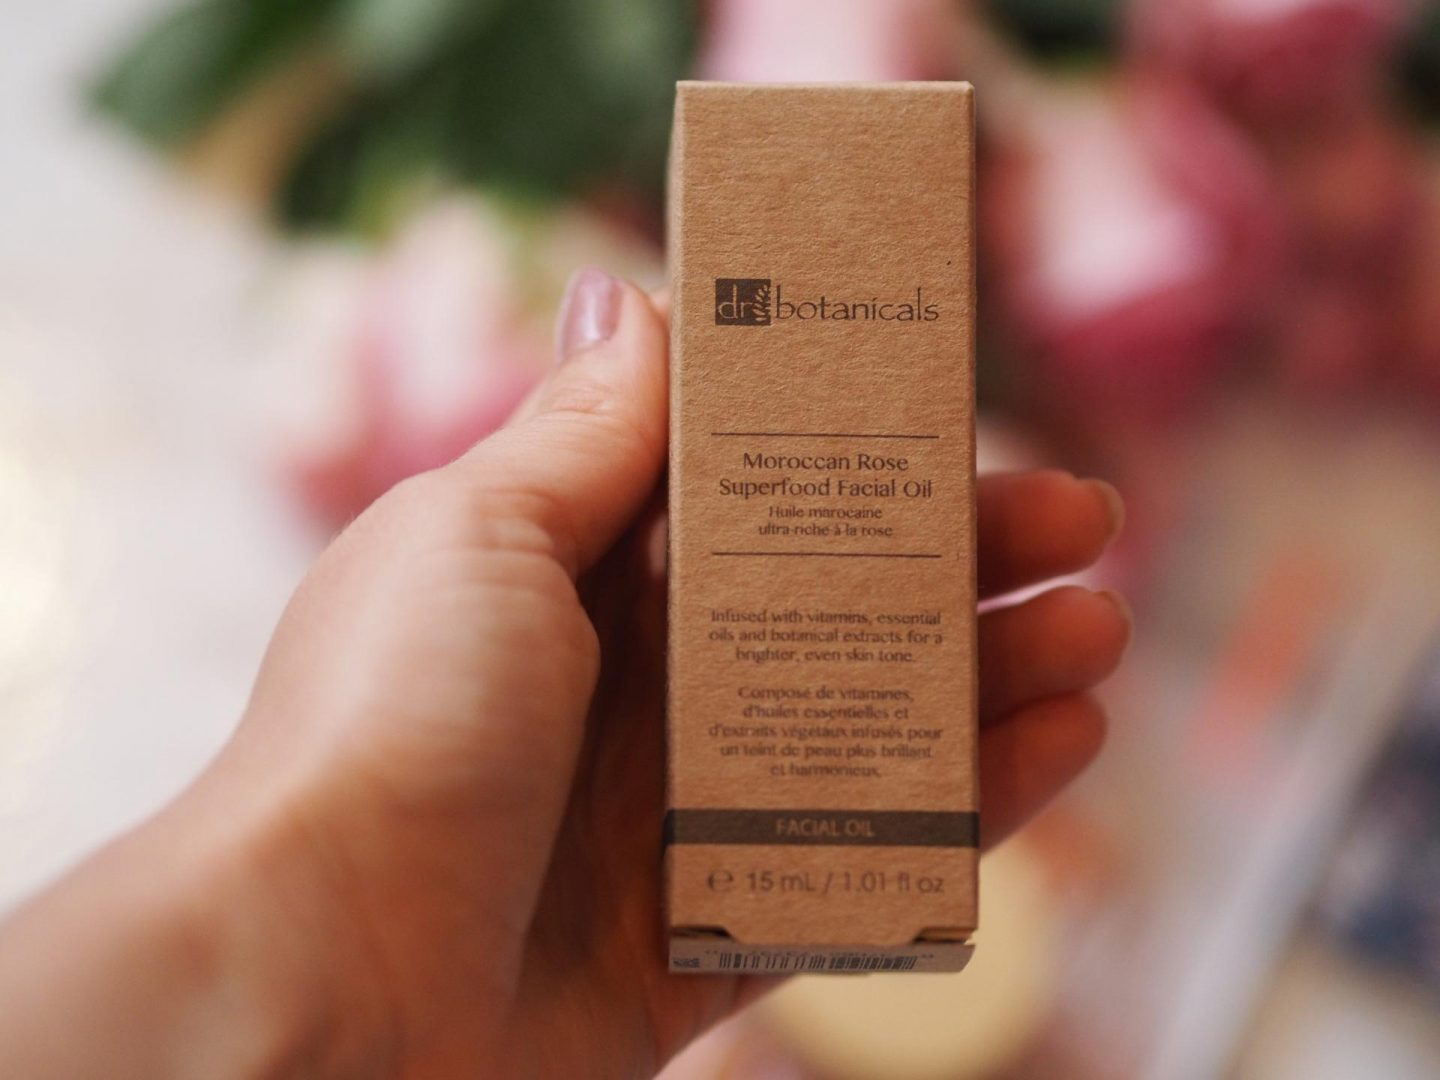 Dr. Botanicals Moroccan Rose Superfood Facial Oil